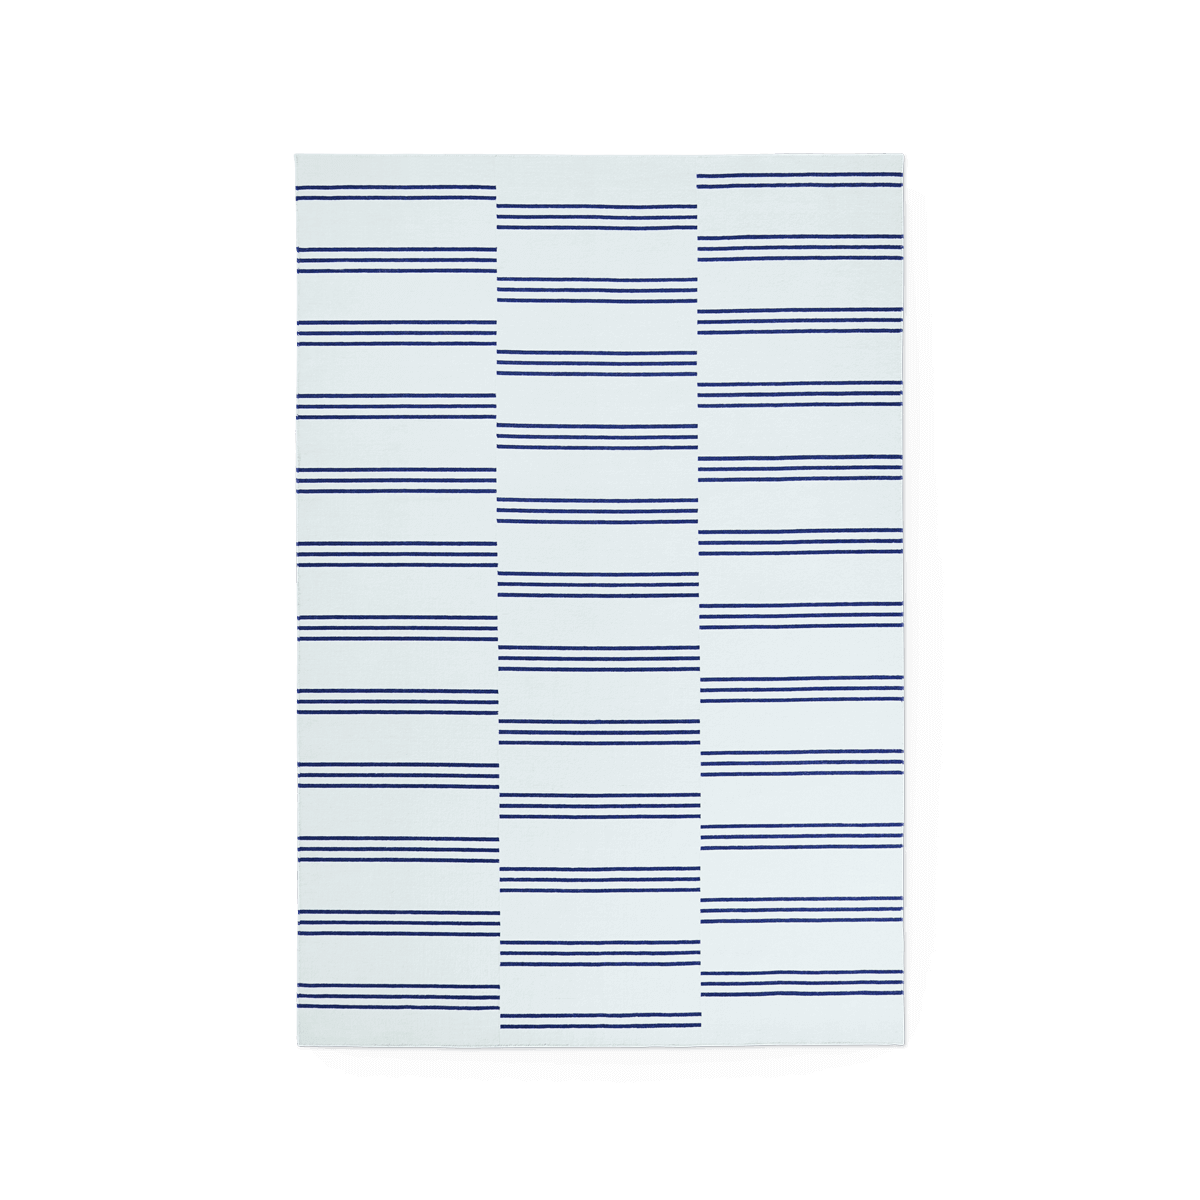 Product image of the flatweave rug Stripes in the color Blue. The rug itself is a light blue color with dark blue stripes creating a pattern.